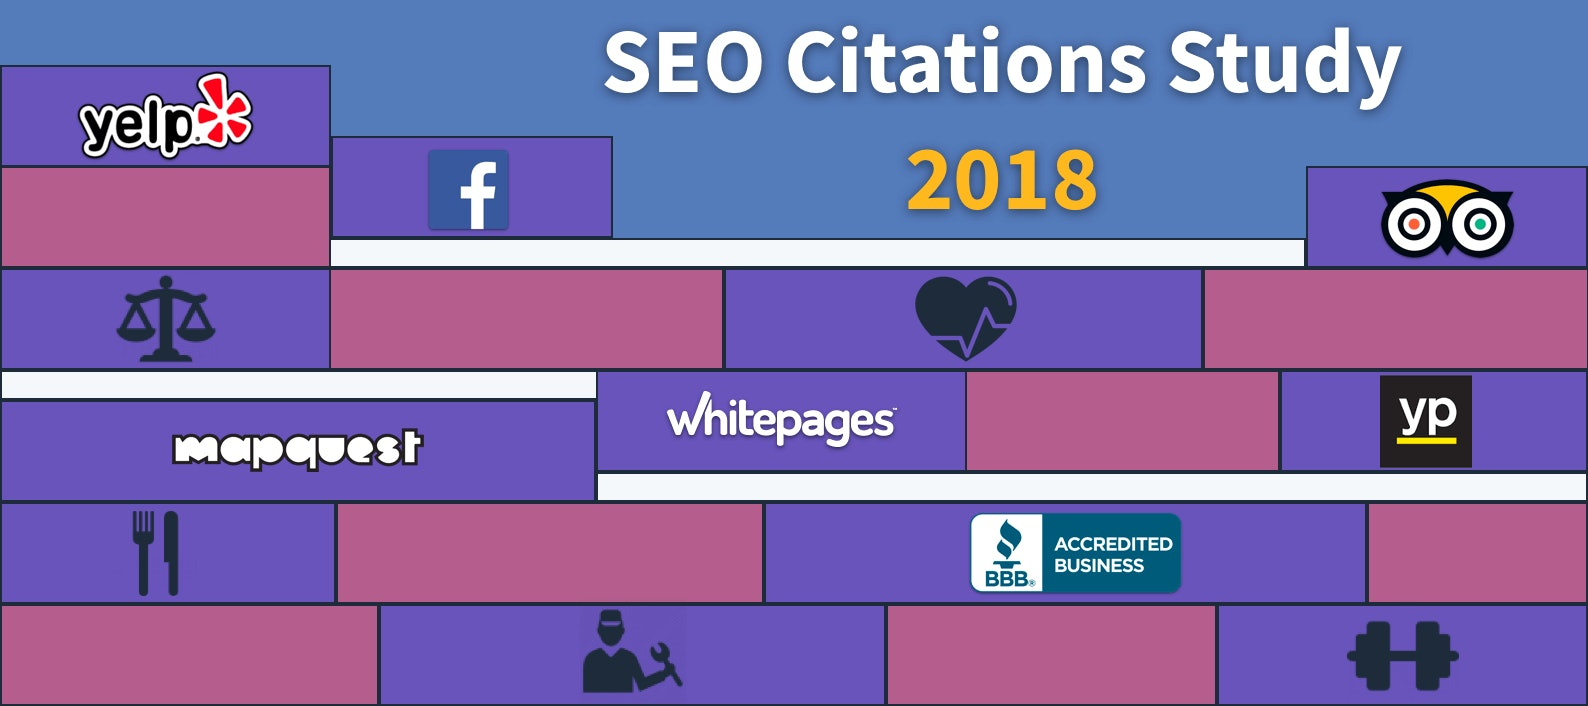 SEO Citations Study: How Many Citations Do Local Businesses Need?